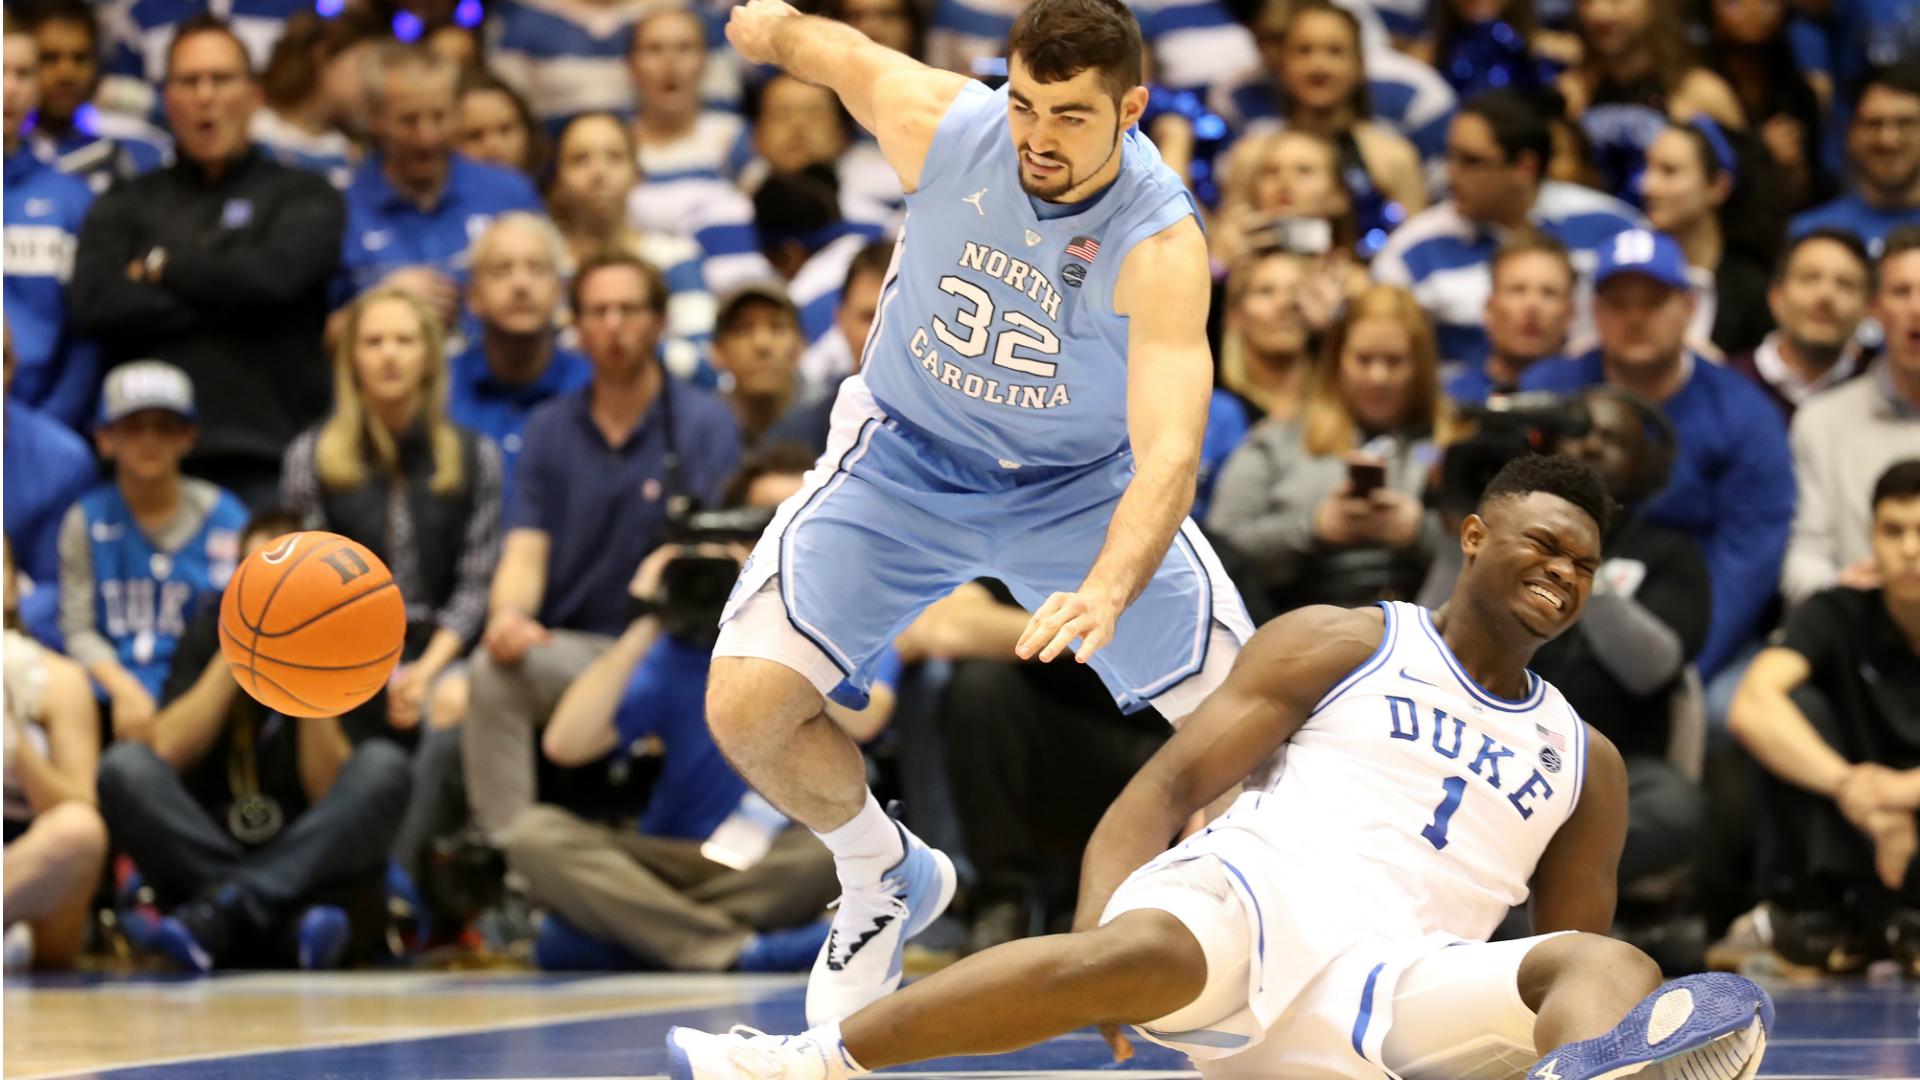 65e0d8c0d Duke results: Zion Williamson suffers injury, Tar Heels rout Blue Devils |  Sporting News